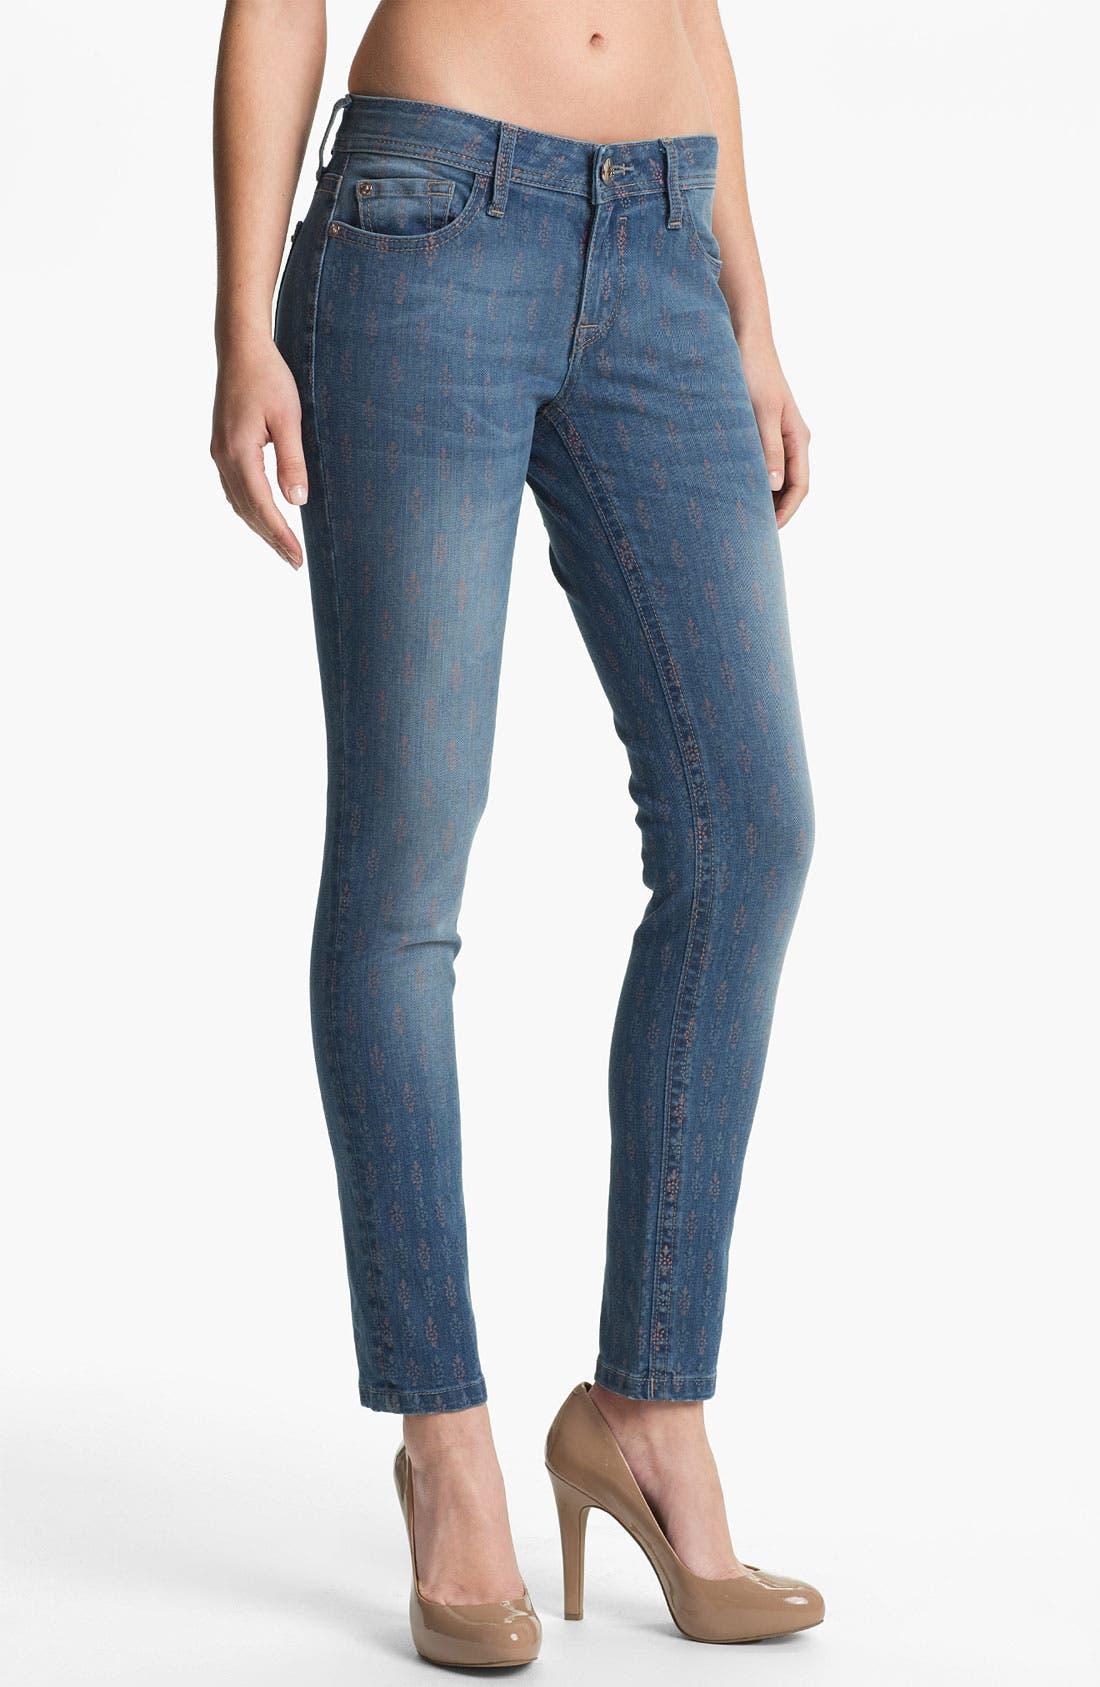 Alternate Image 1 Selected - DL1961 'Amanda' X-Fit Stretch Print Denim Skinny Jeans (Greenville)